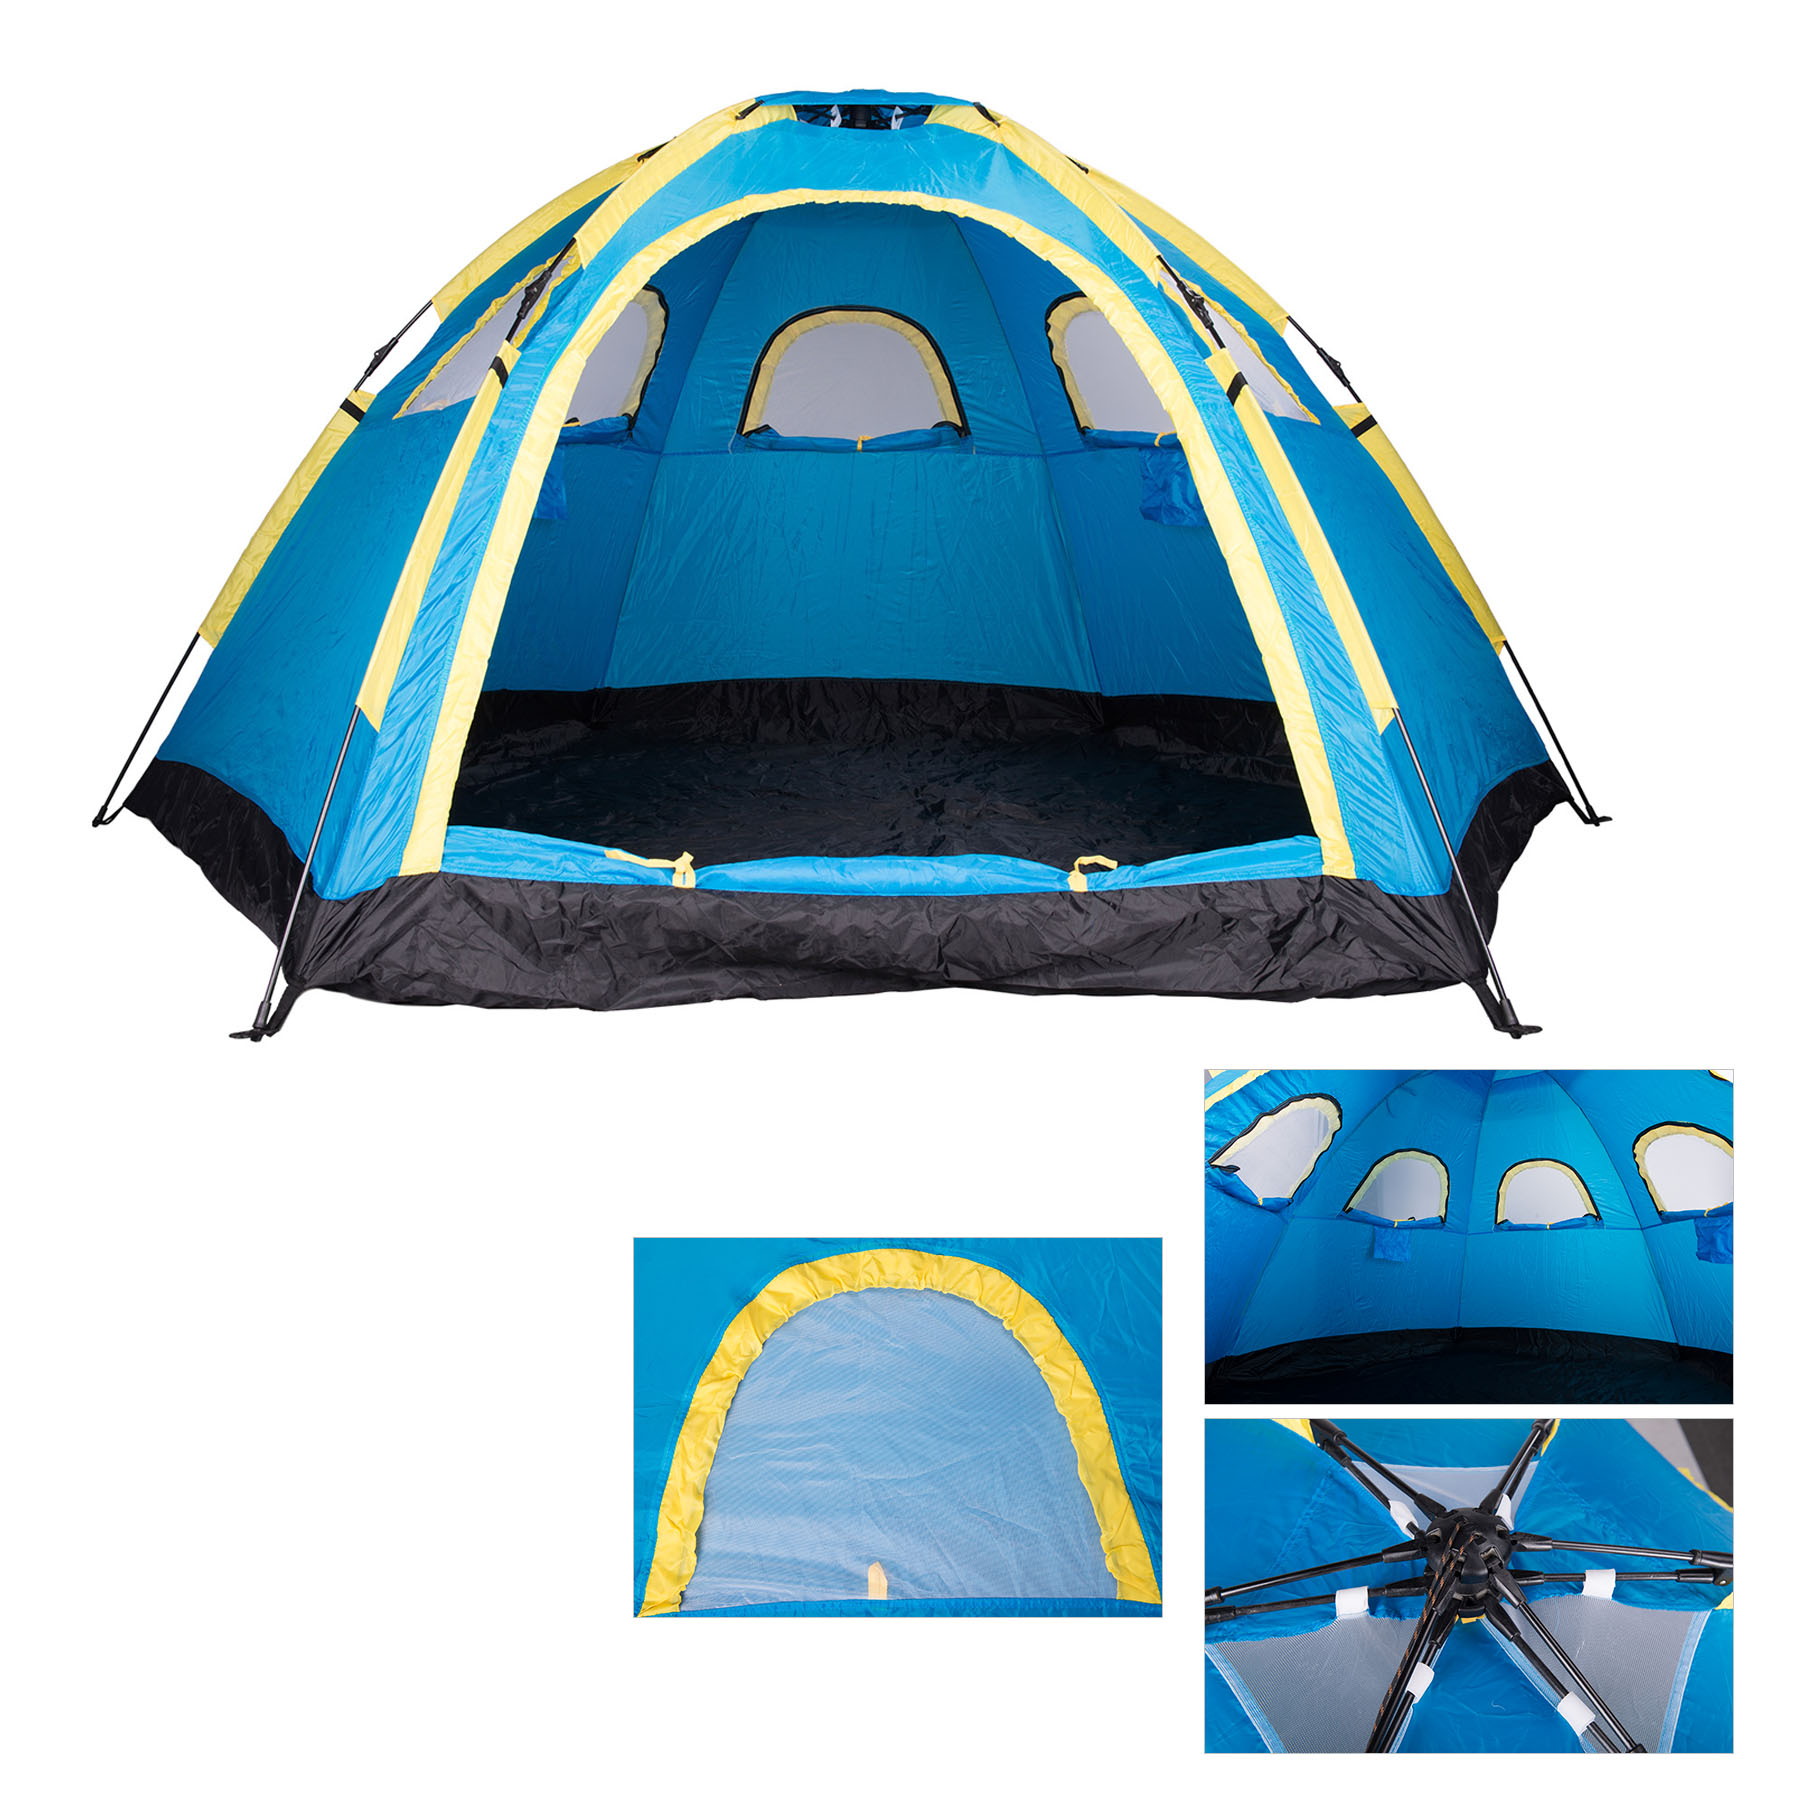 Large Instant Pop up Family Tent 4 Person 3-Season Camping Dome-Style easy Setup